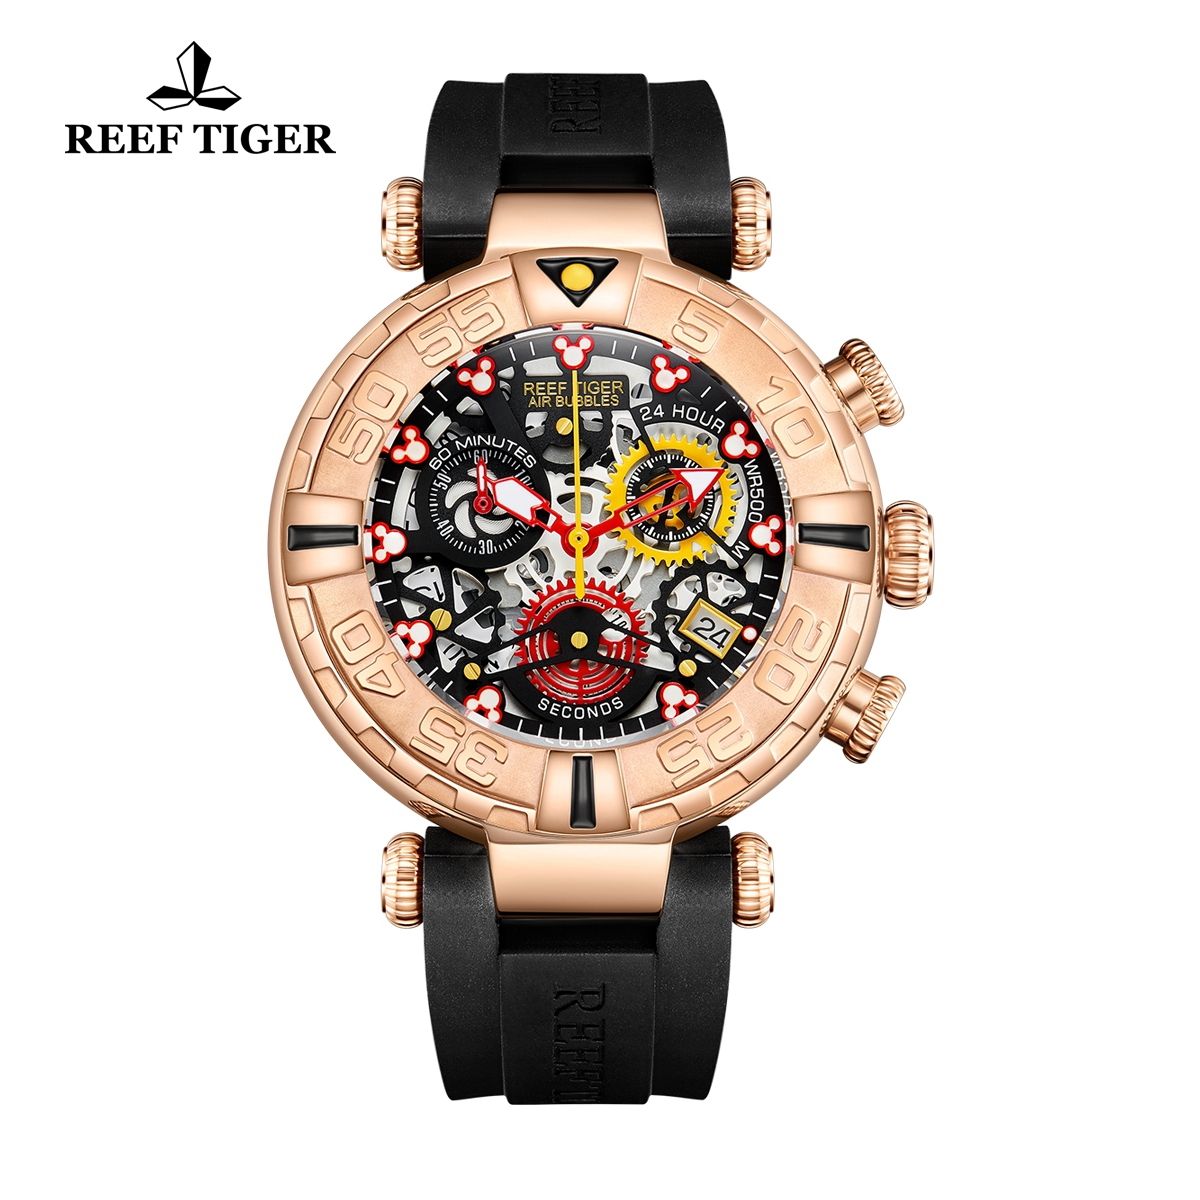 Reef Tiger Aurora Air Bubbles Fashion Rose Gold Skeleton Dial Rubber Strap Quartz Watch RGA3059-S-PBBR